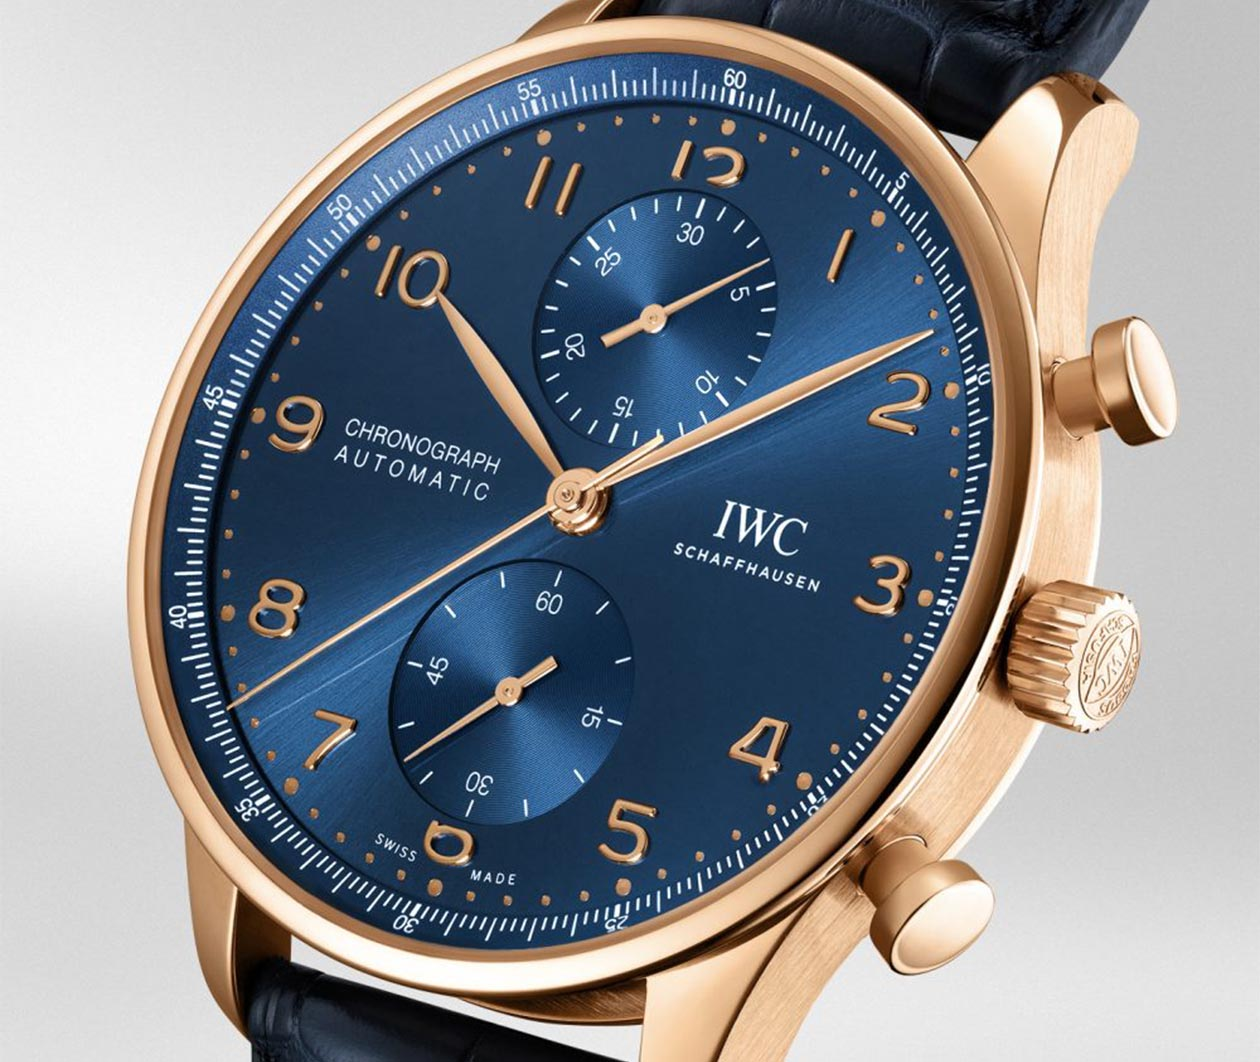 IWC Portugieser ChronographBoutiqueEdition IW371614 Carousel 2 FINAL